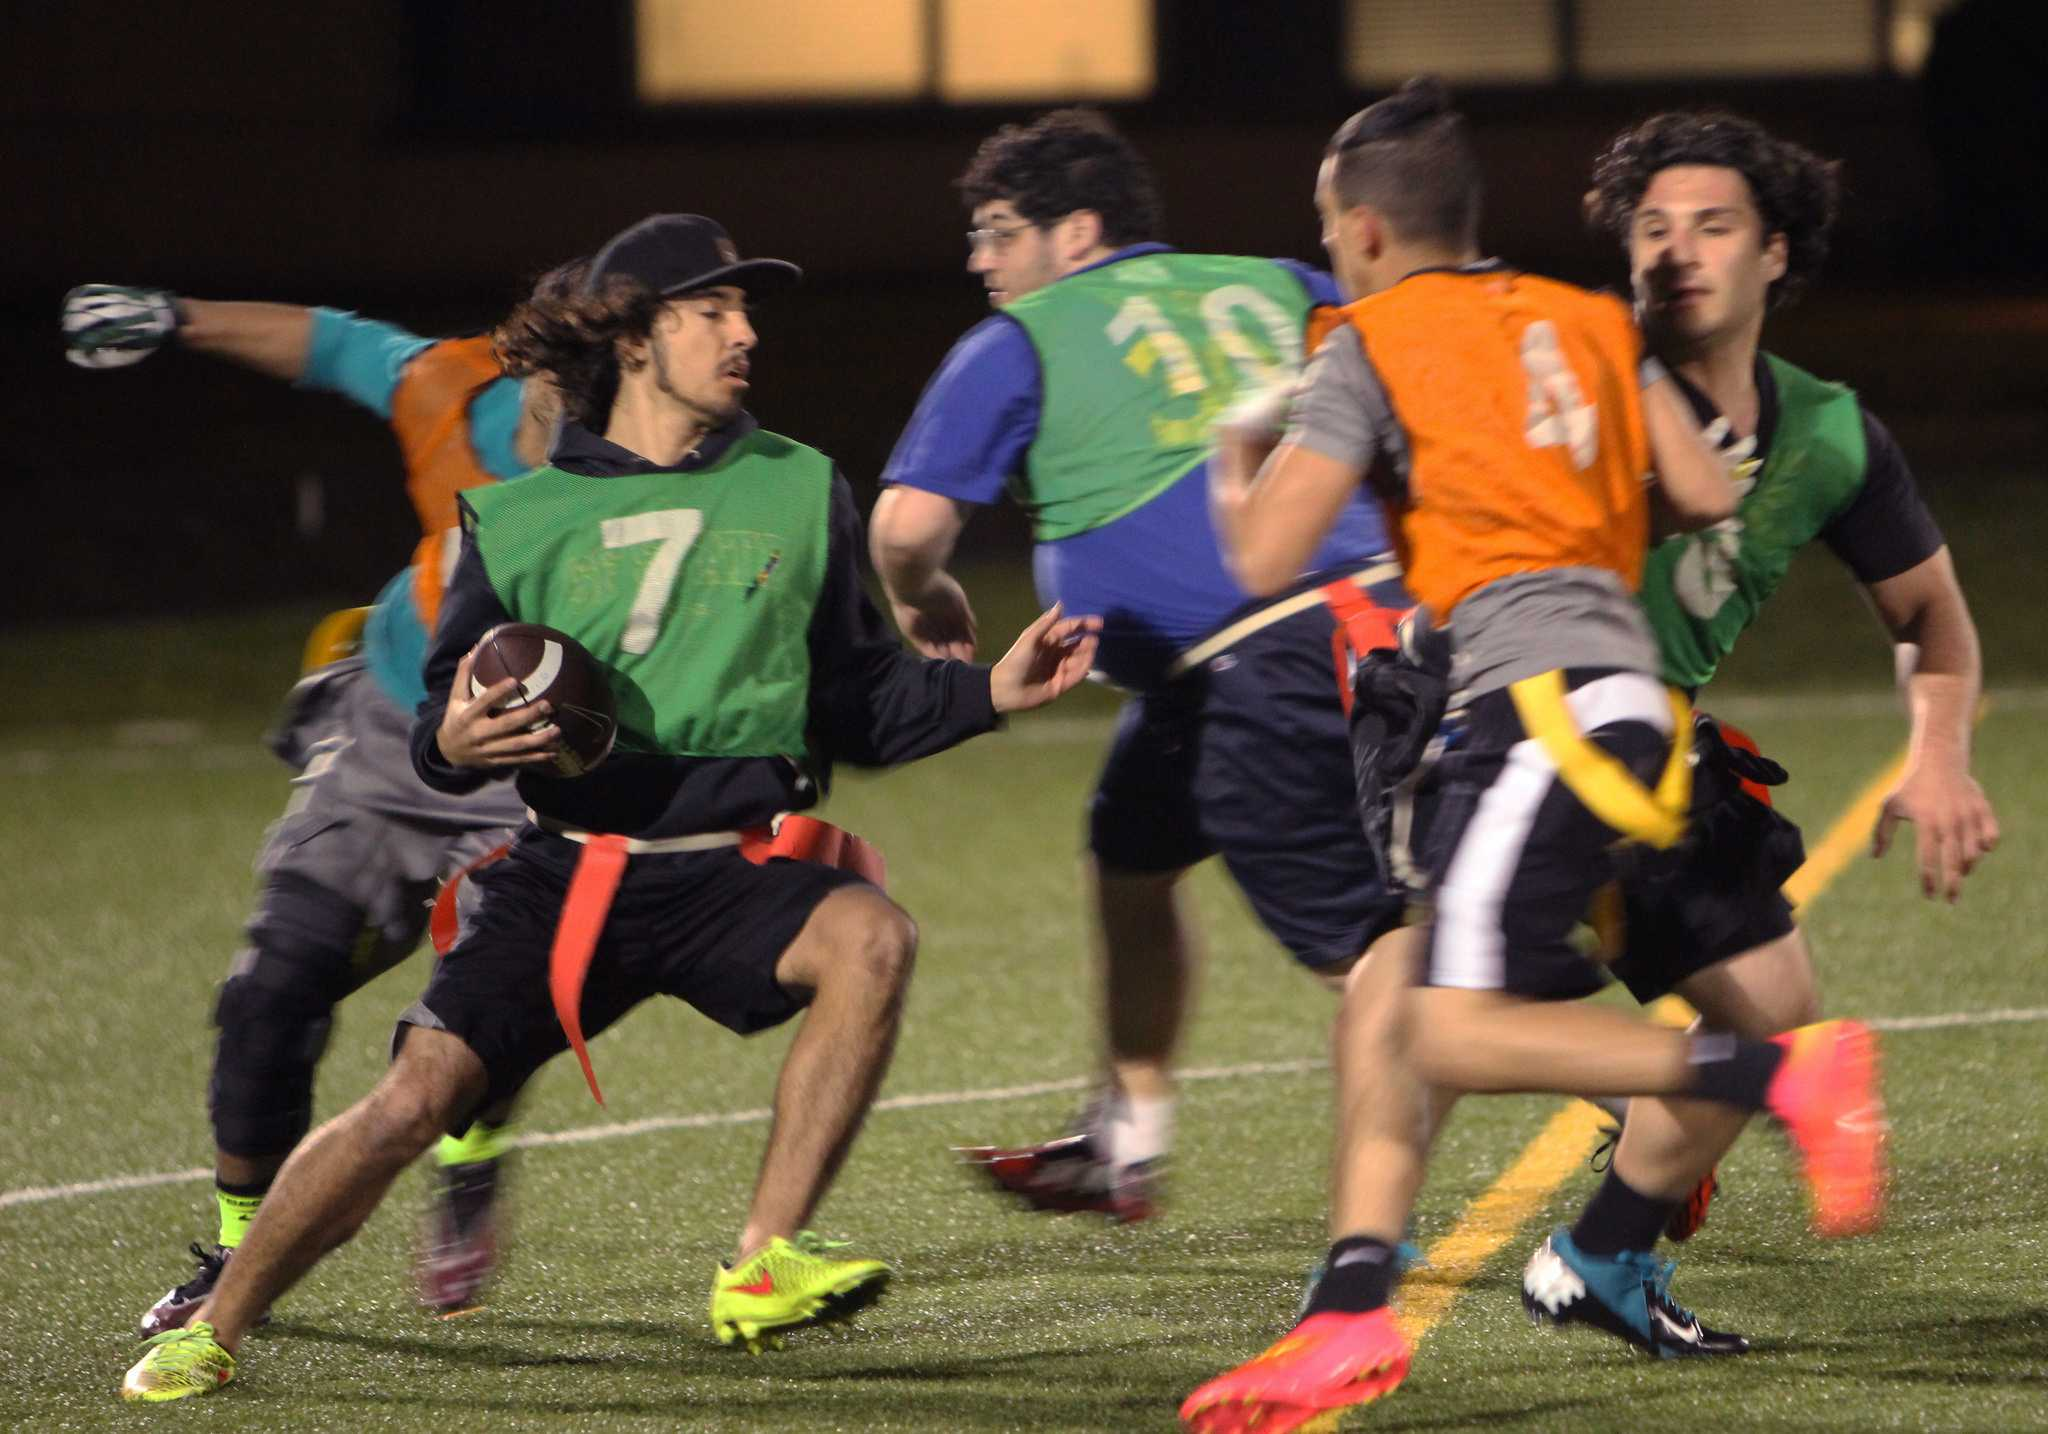 Intramural sports fuses rivalry and leisure